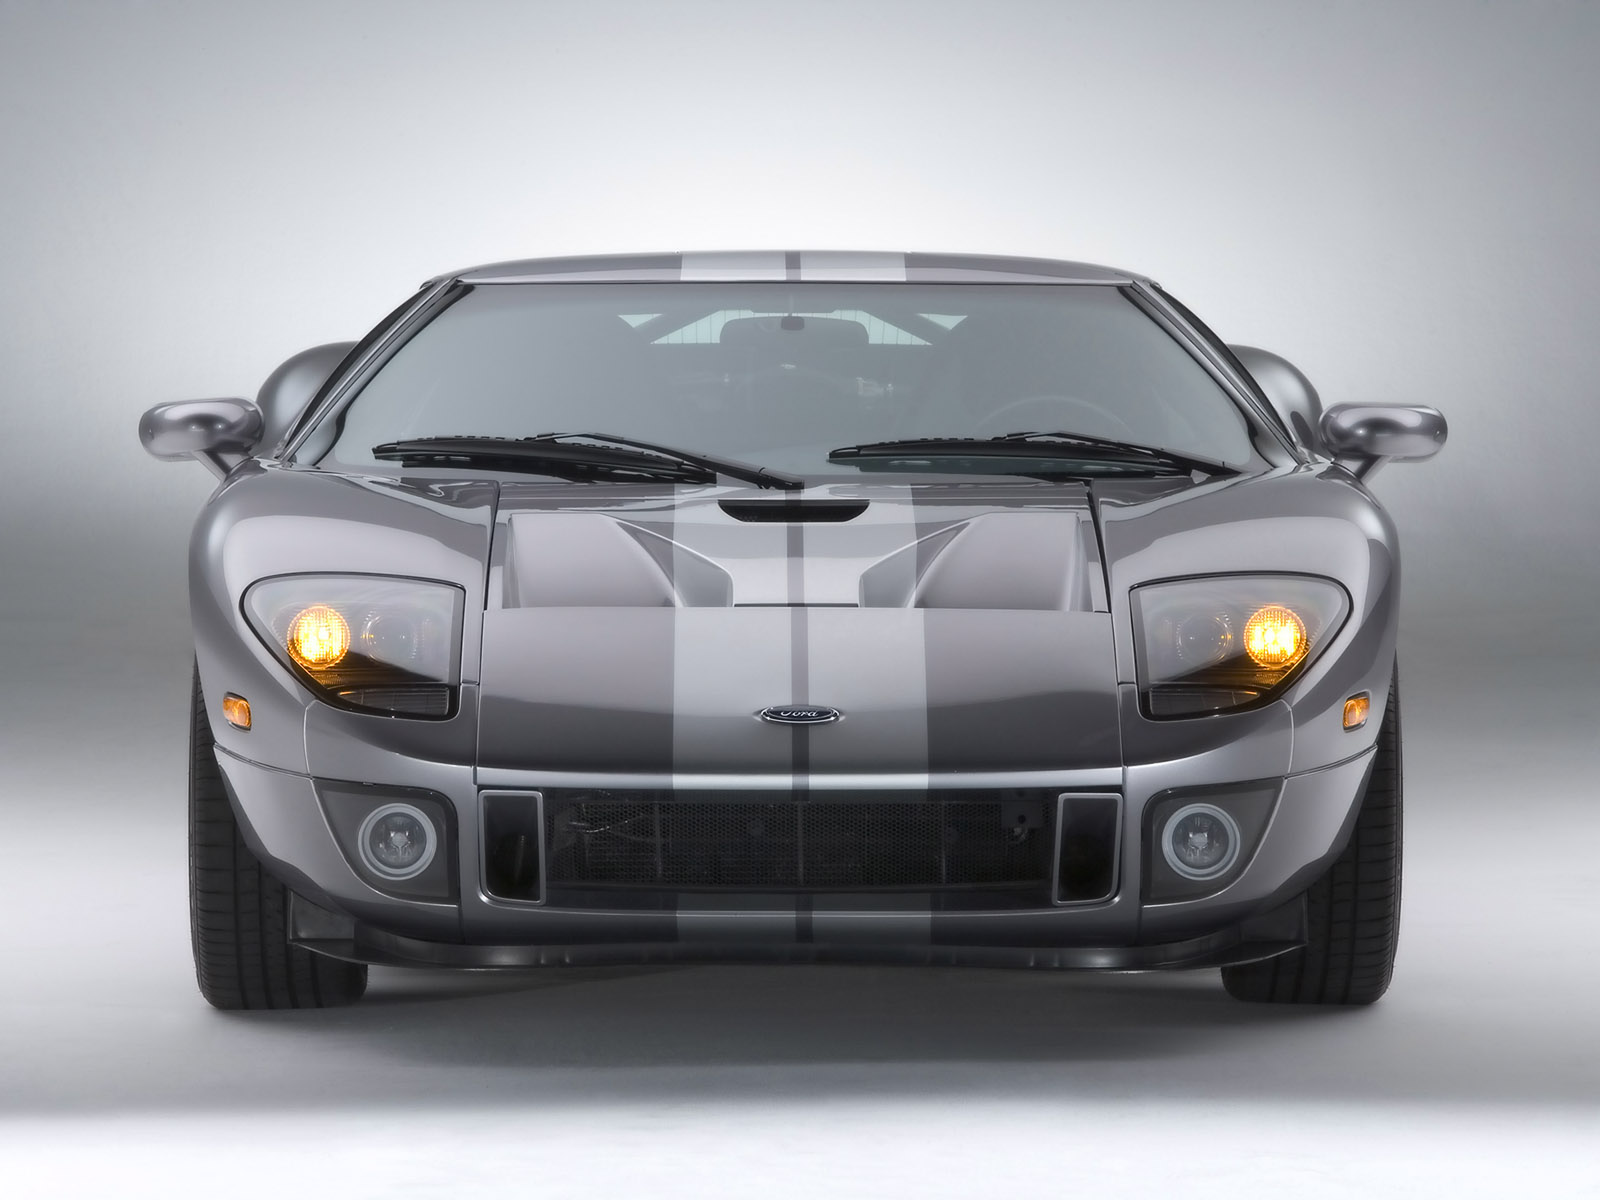 Ford GT picture 21989 Ford photo gallery CarsBasecom 1600x1200